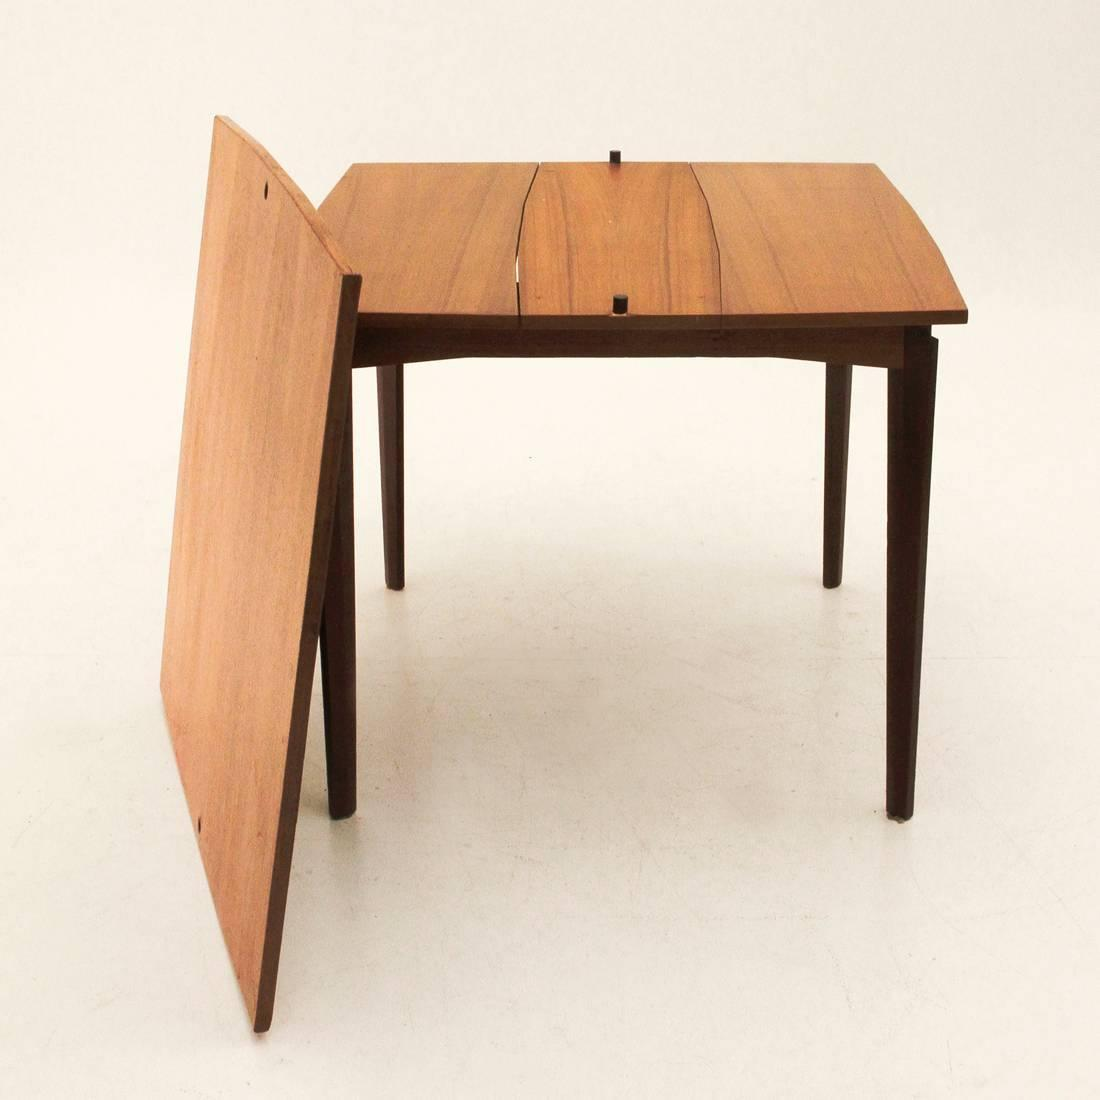 Italian Folding Dining Table 1950s For Sale at 1stdibs : MG8619z from www.1stdibs.com size 1100 x 1100 jpeg 57kB